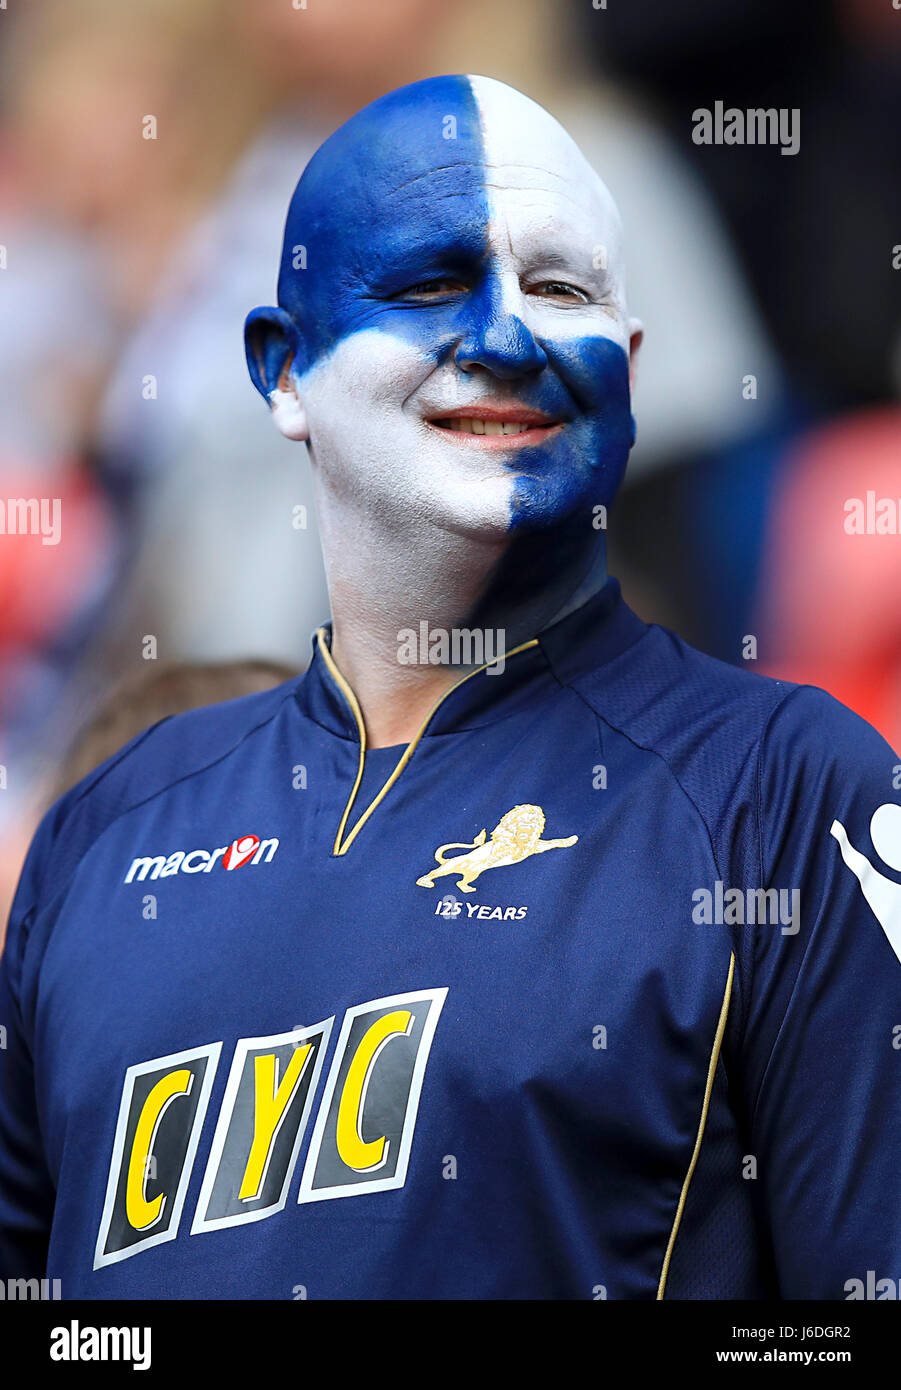 Image result for millwall fans face painted